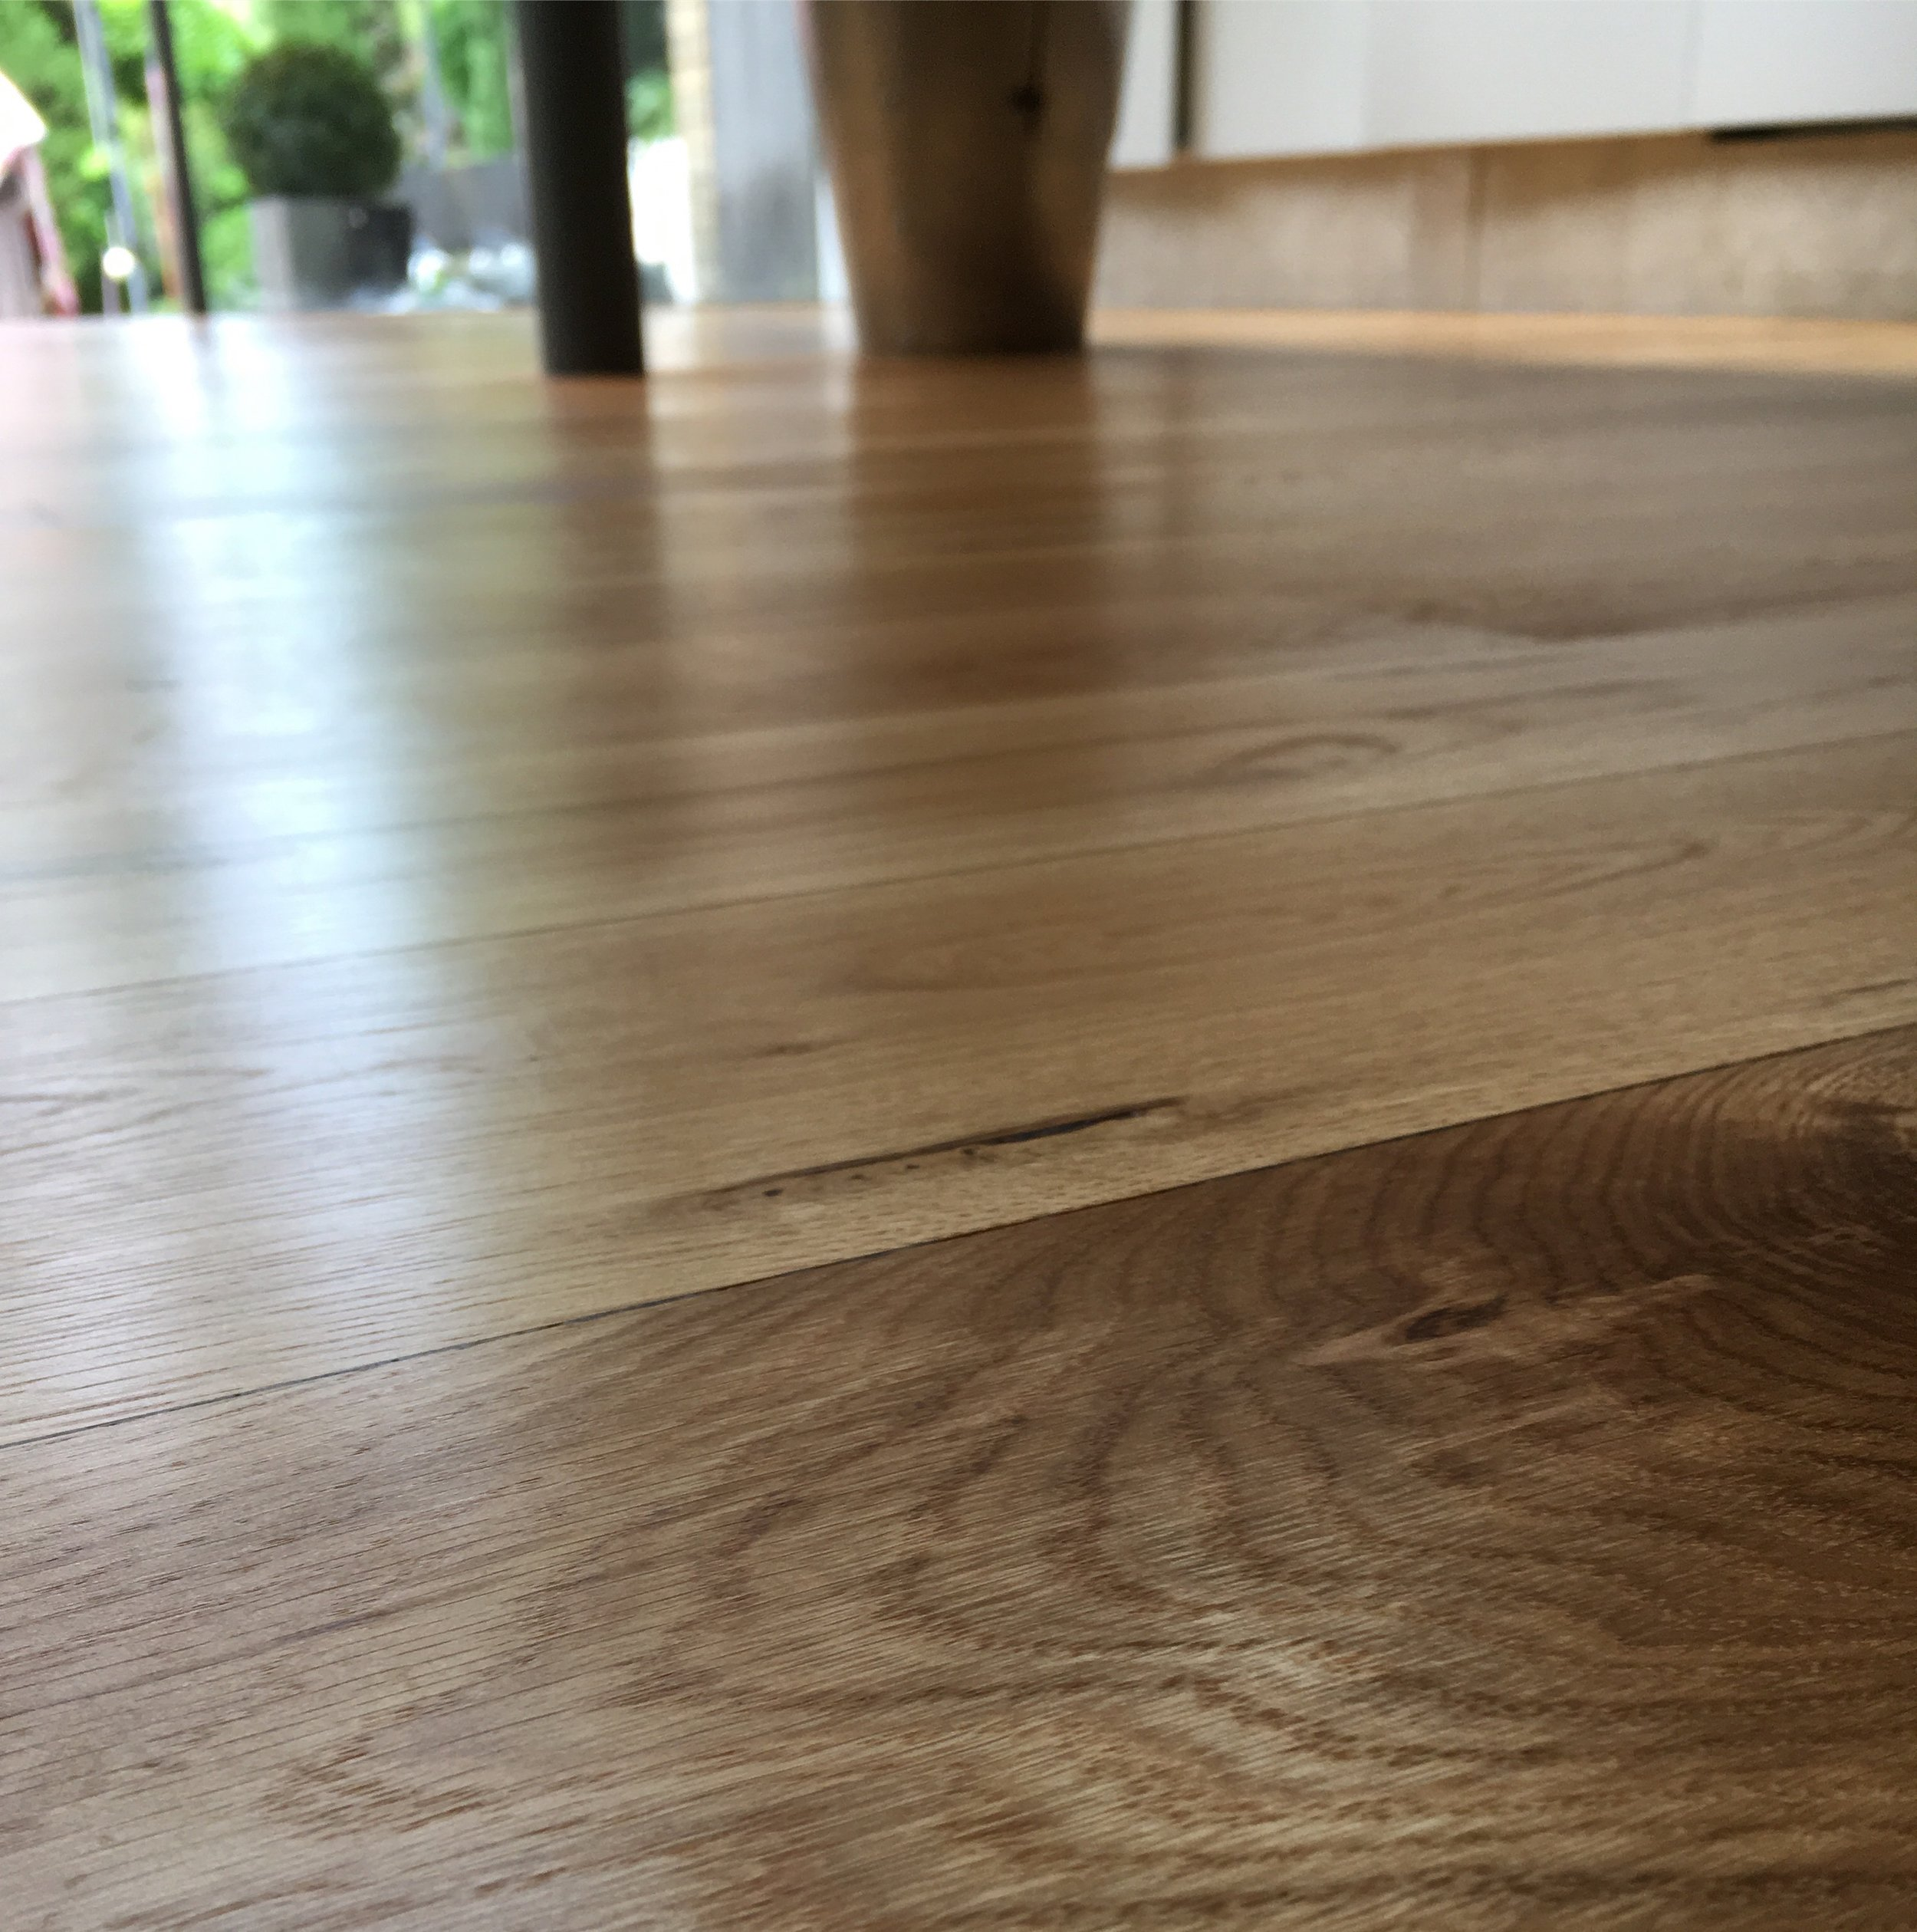 Oiled oak kitchen floor